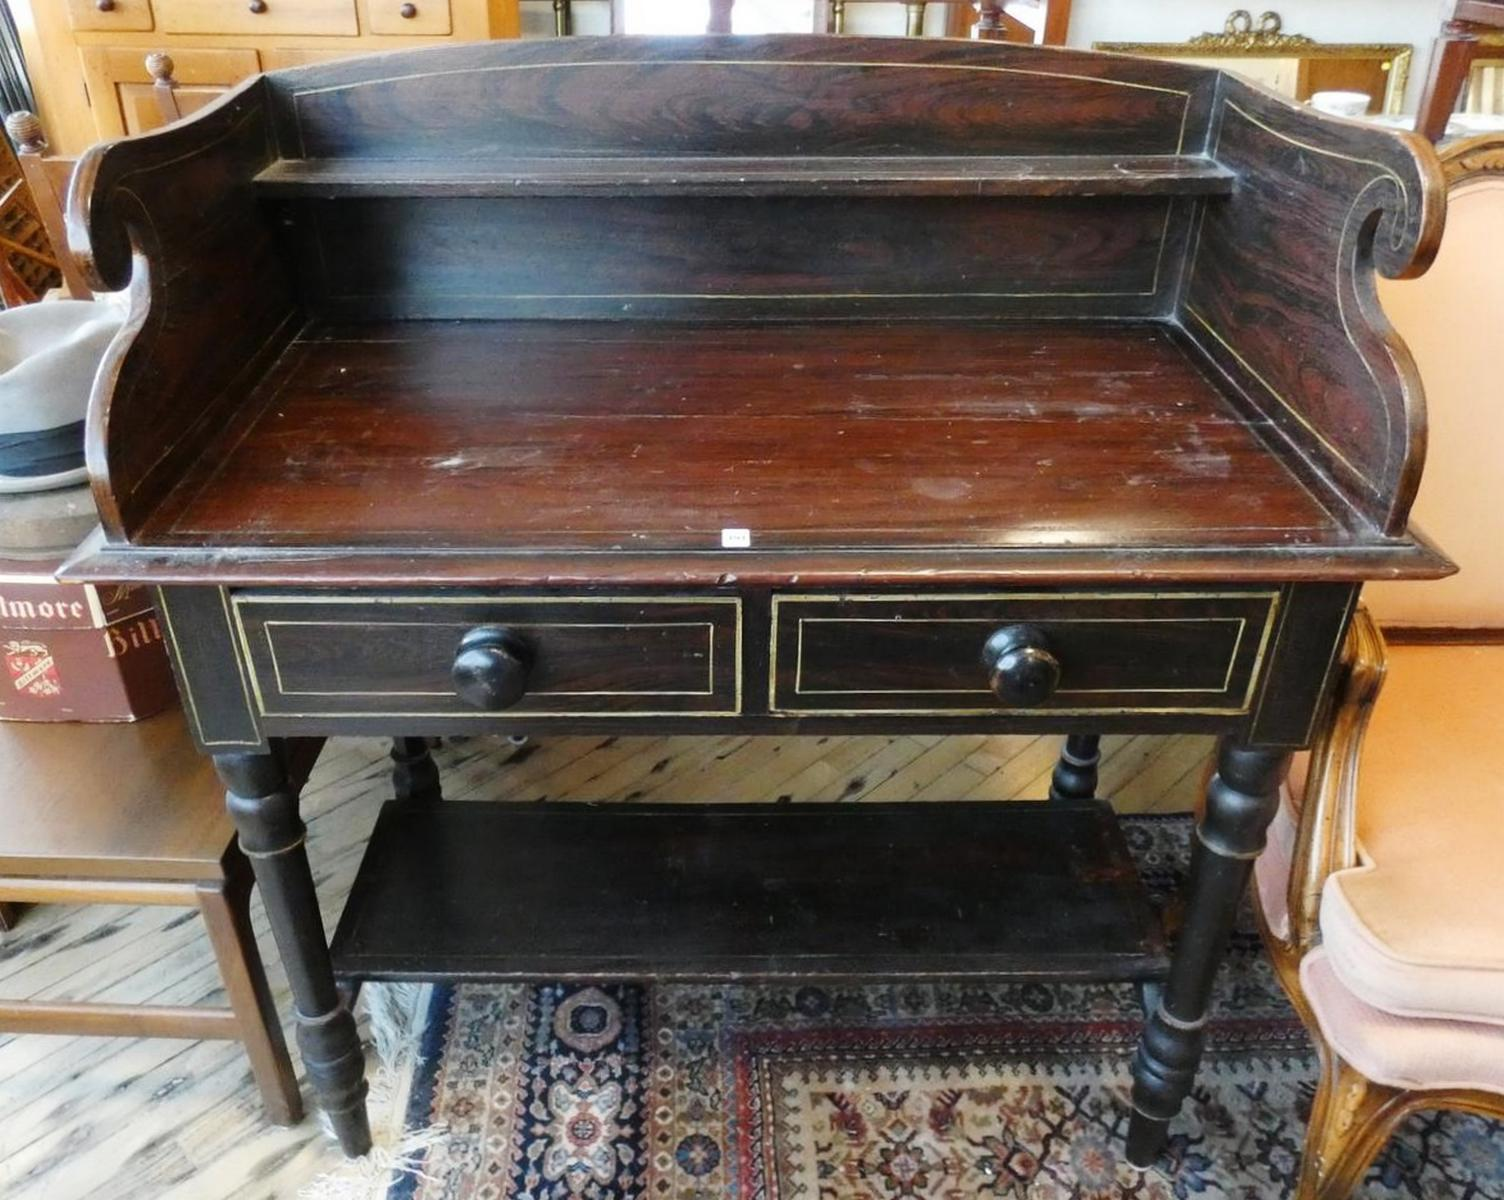 EARLY WASHSTAND